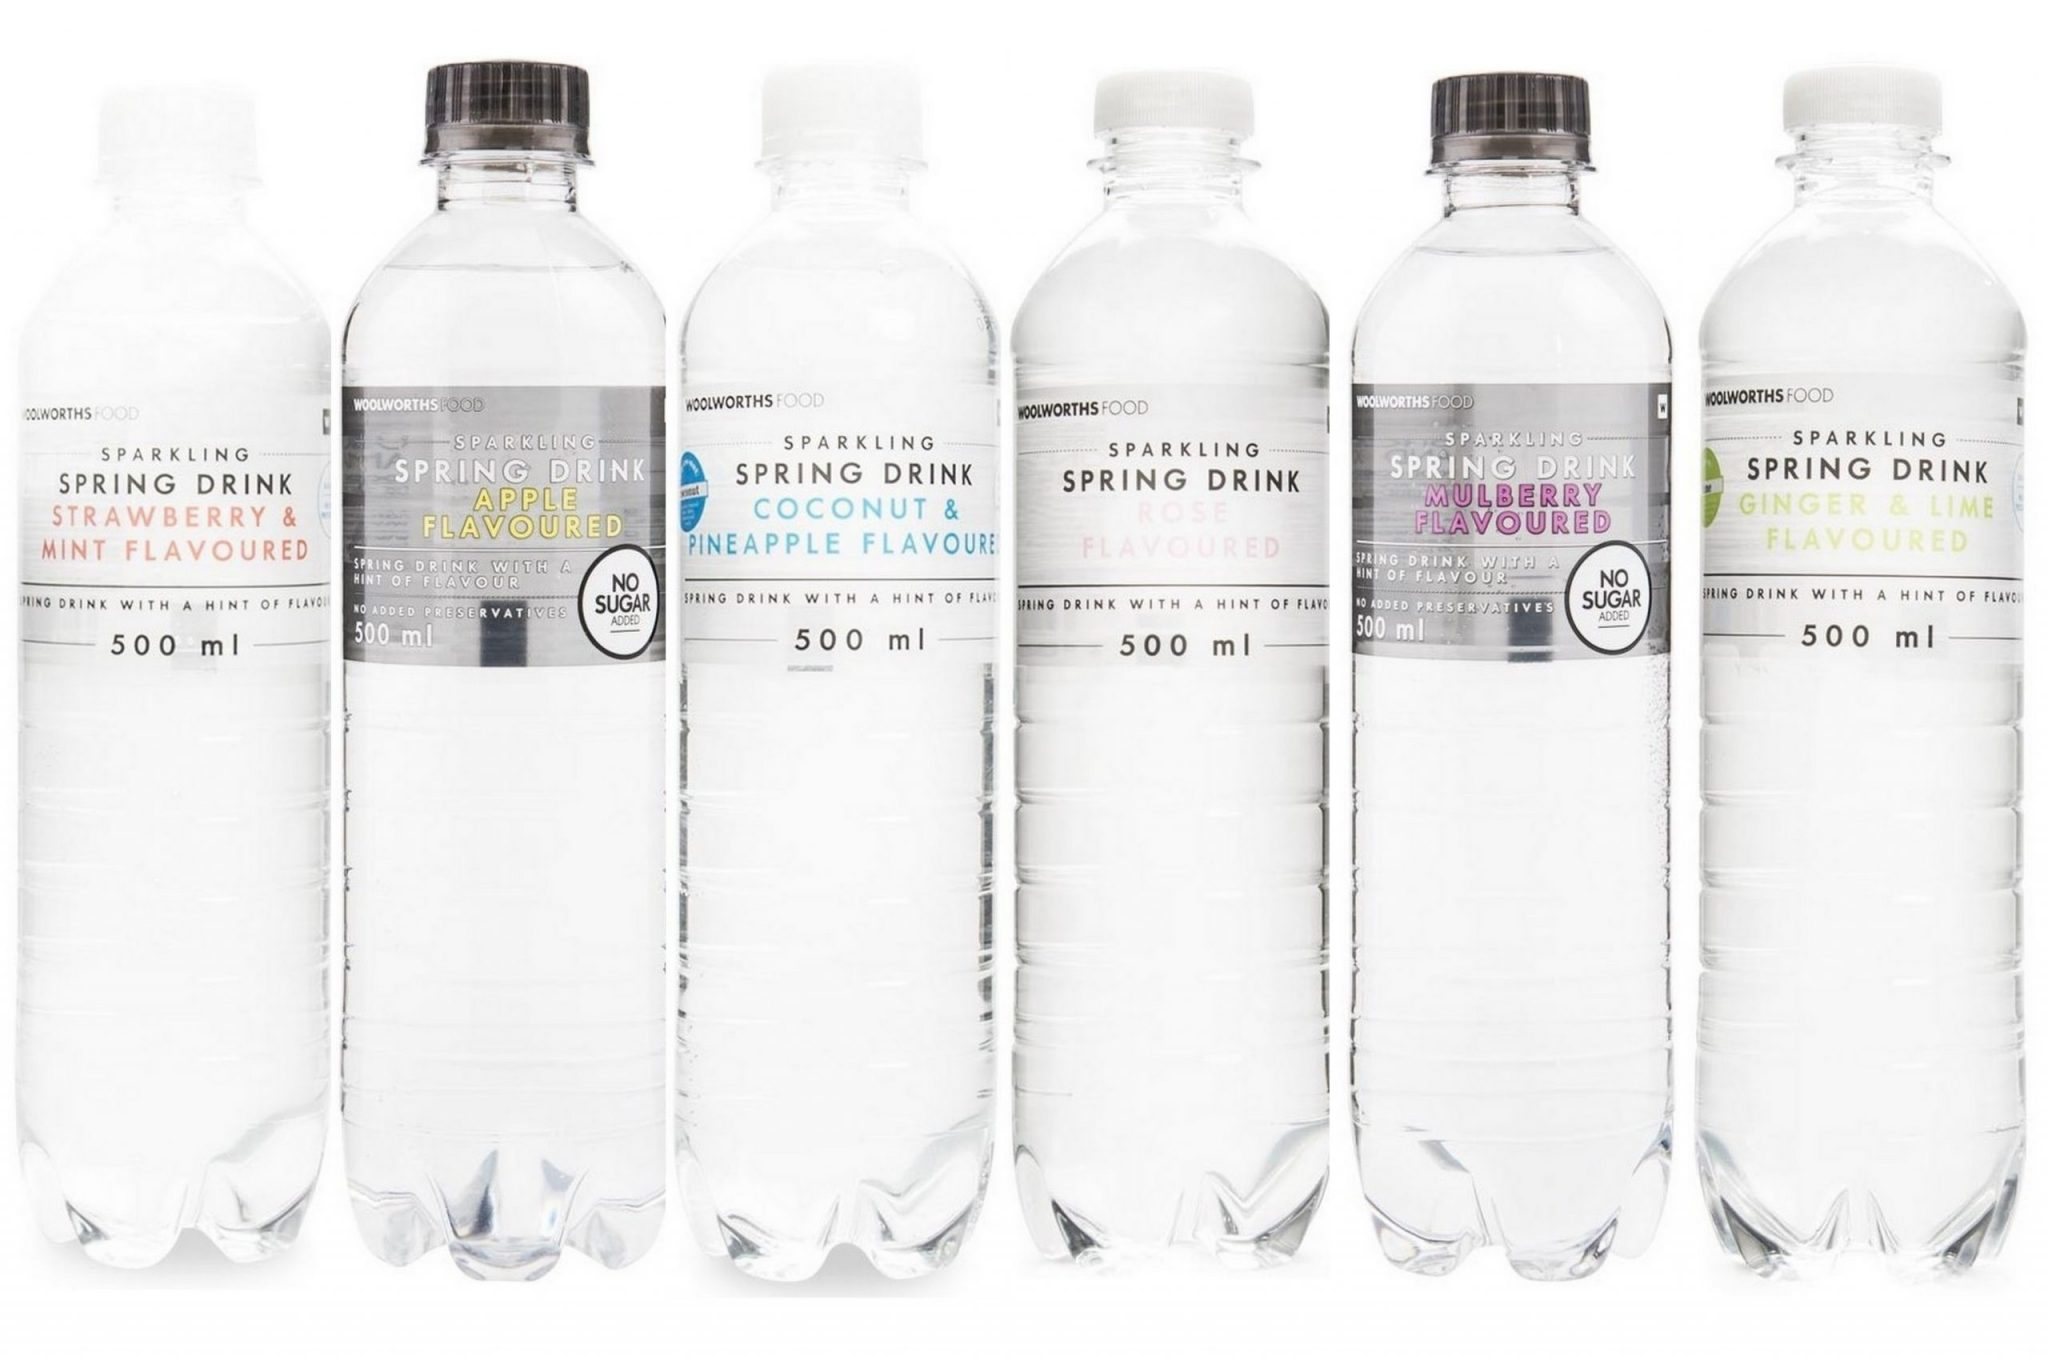 WOOLWORTHS FLAVOURED WATER scaled